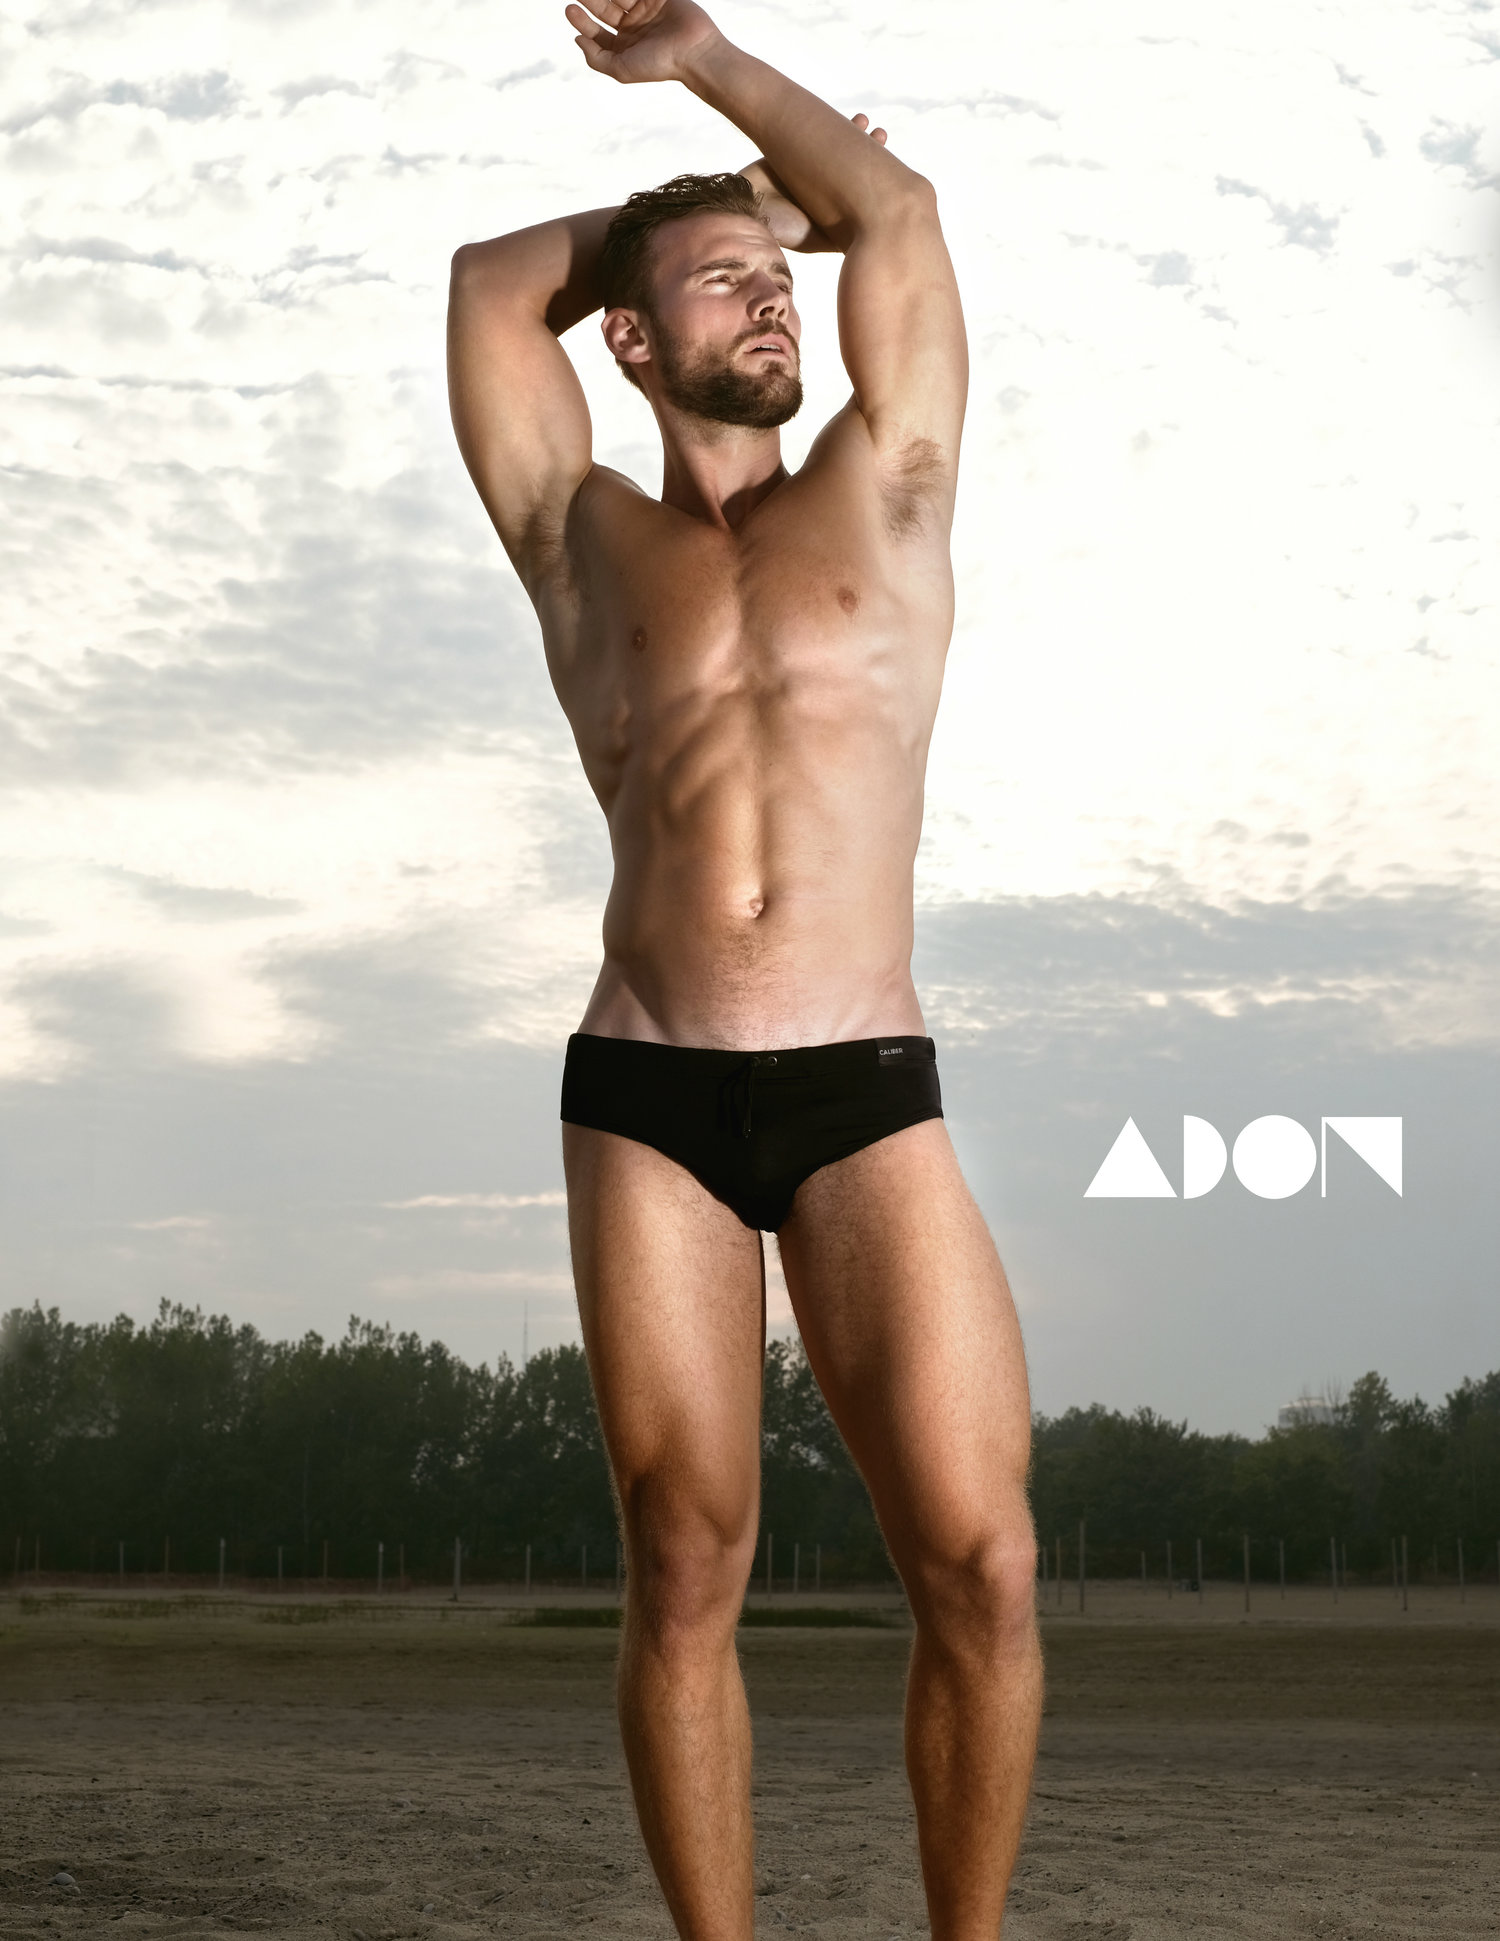 Adon Exclusive: Model Steven Hodgson By Hoyin Siu